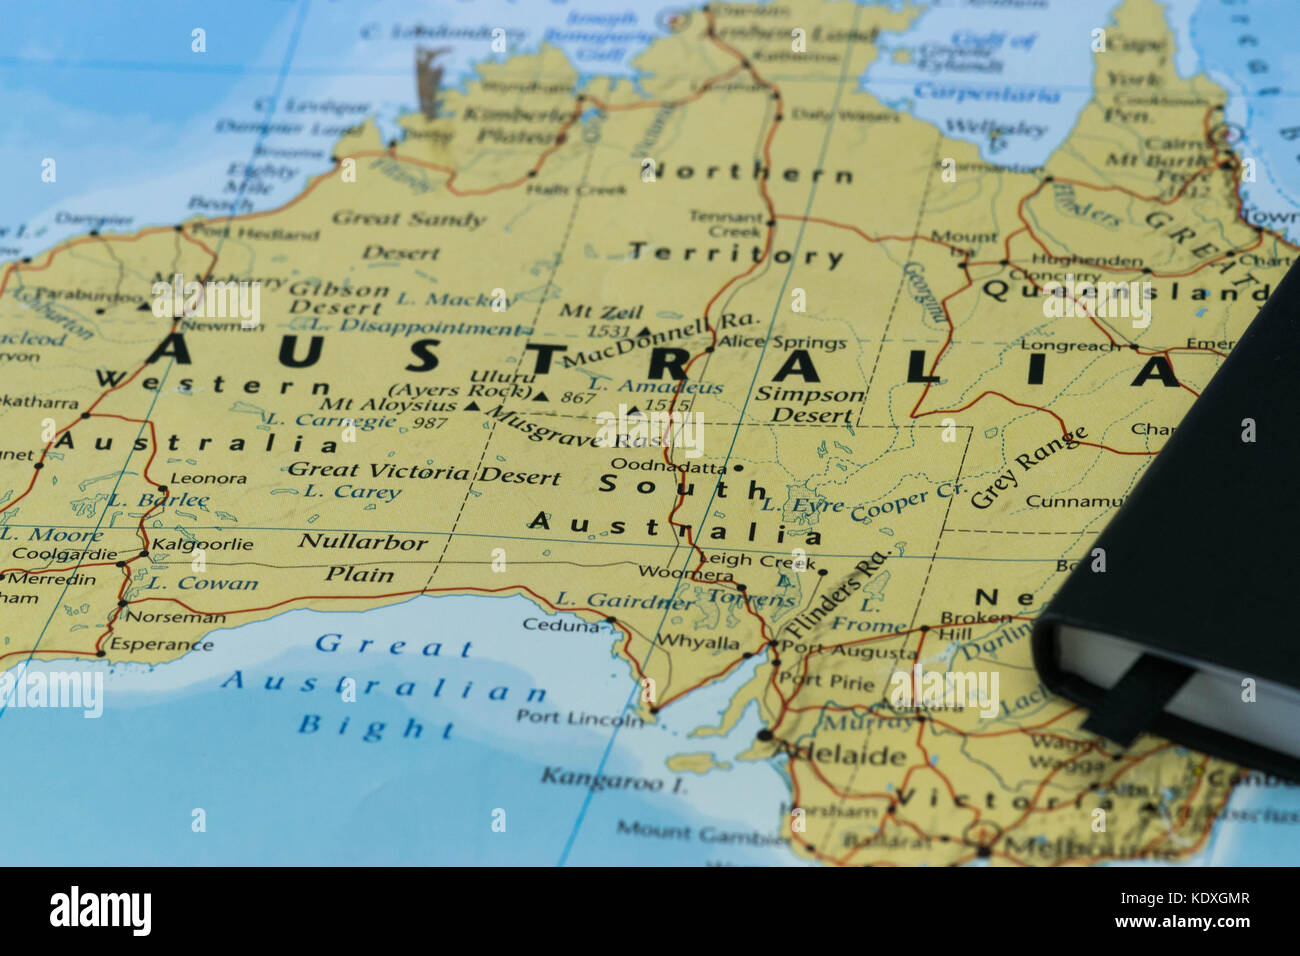 Personal notes of a traveller planning to move to Australia - Stock Image